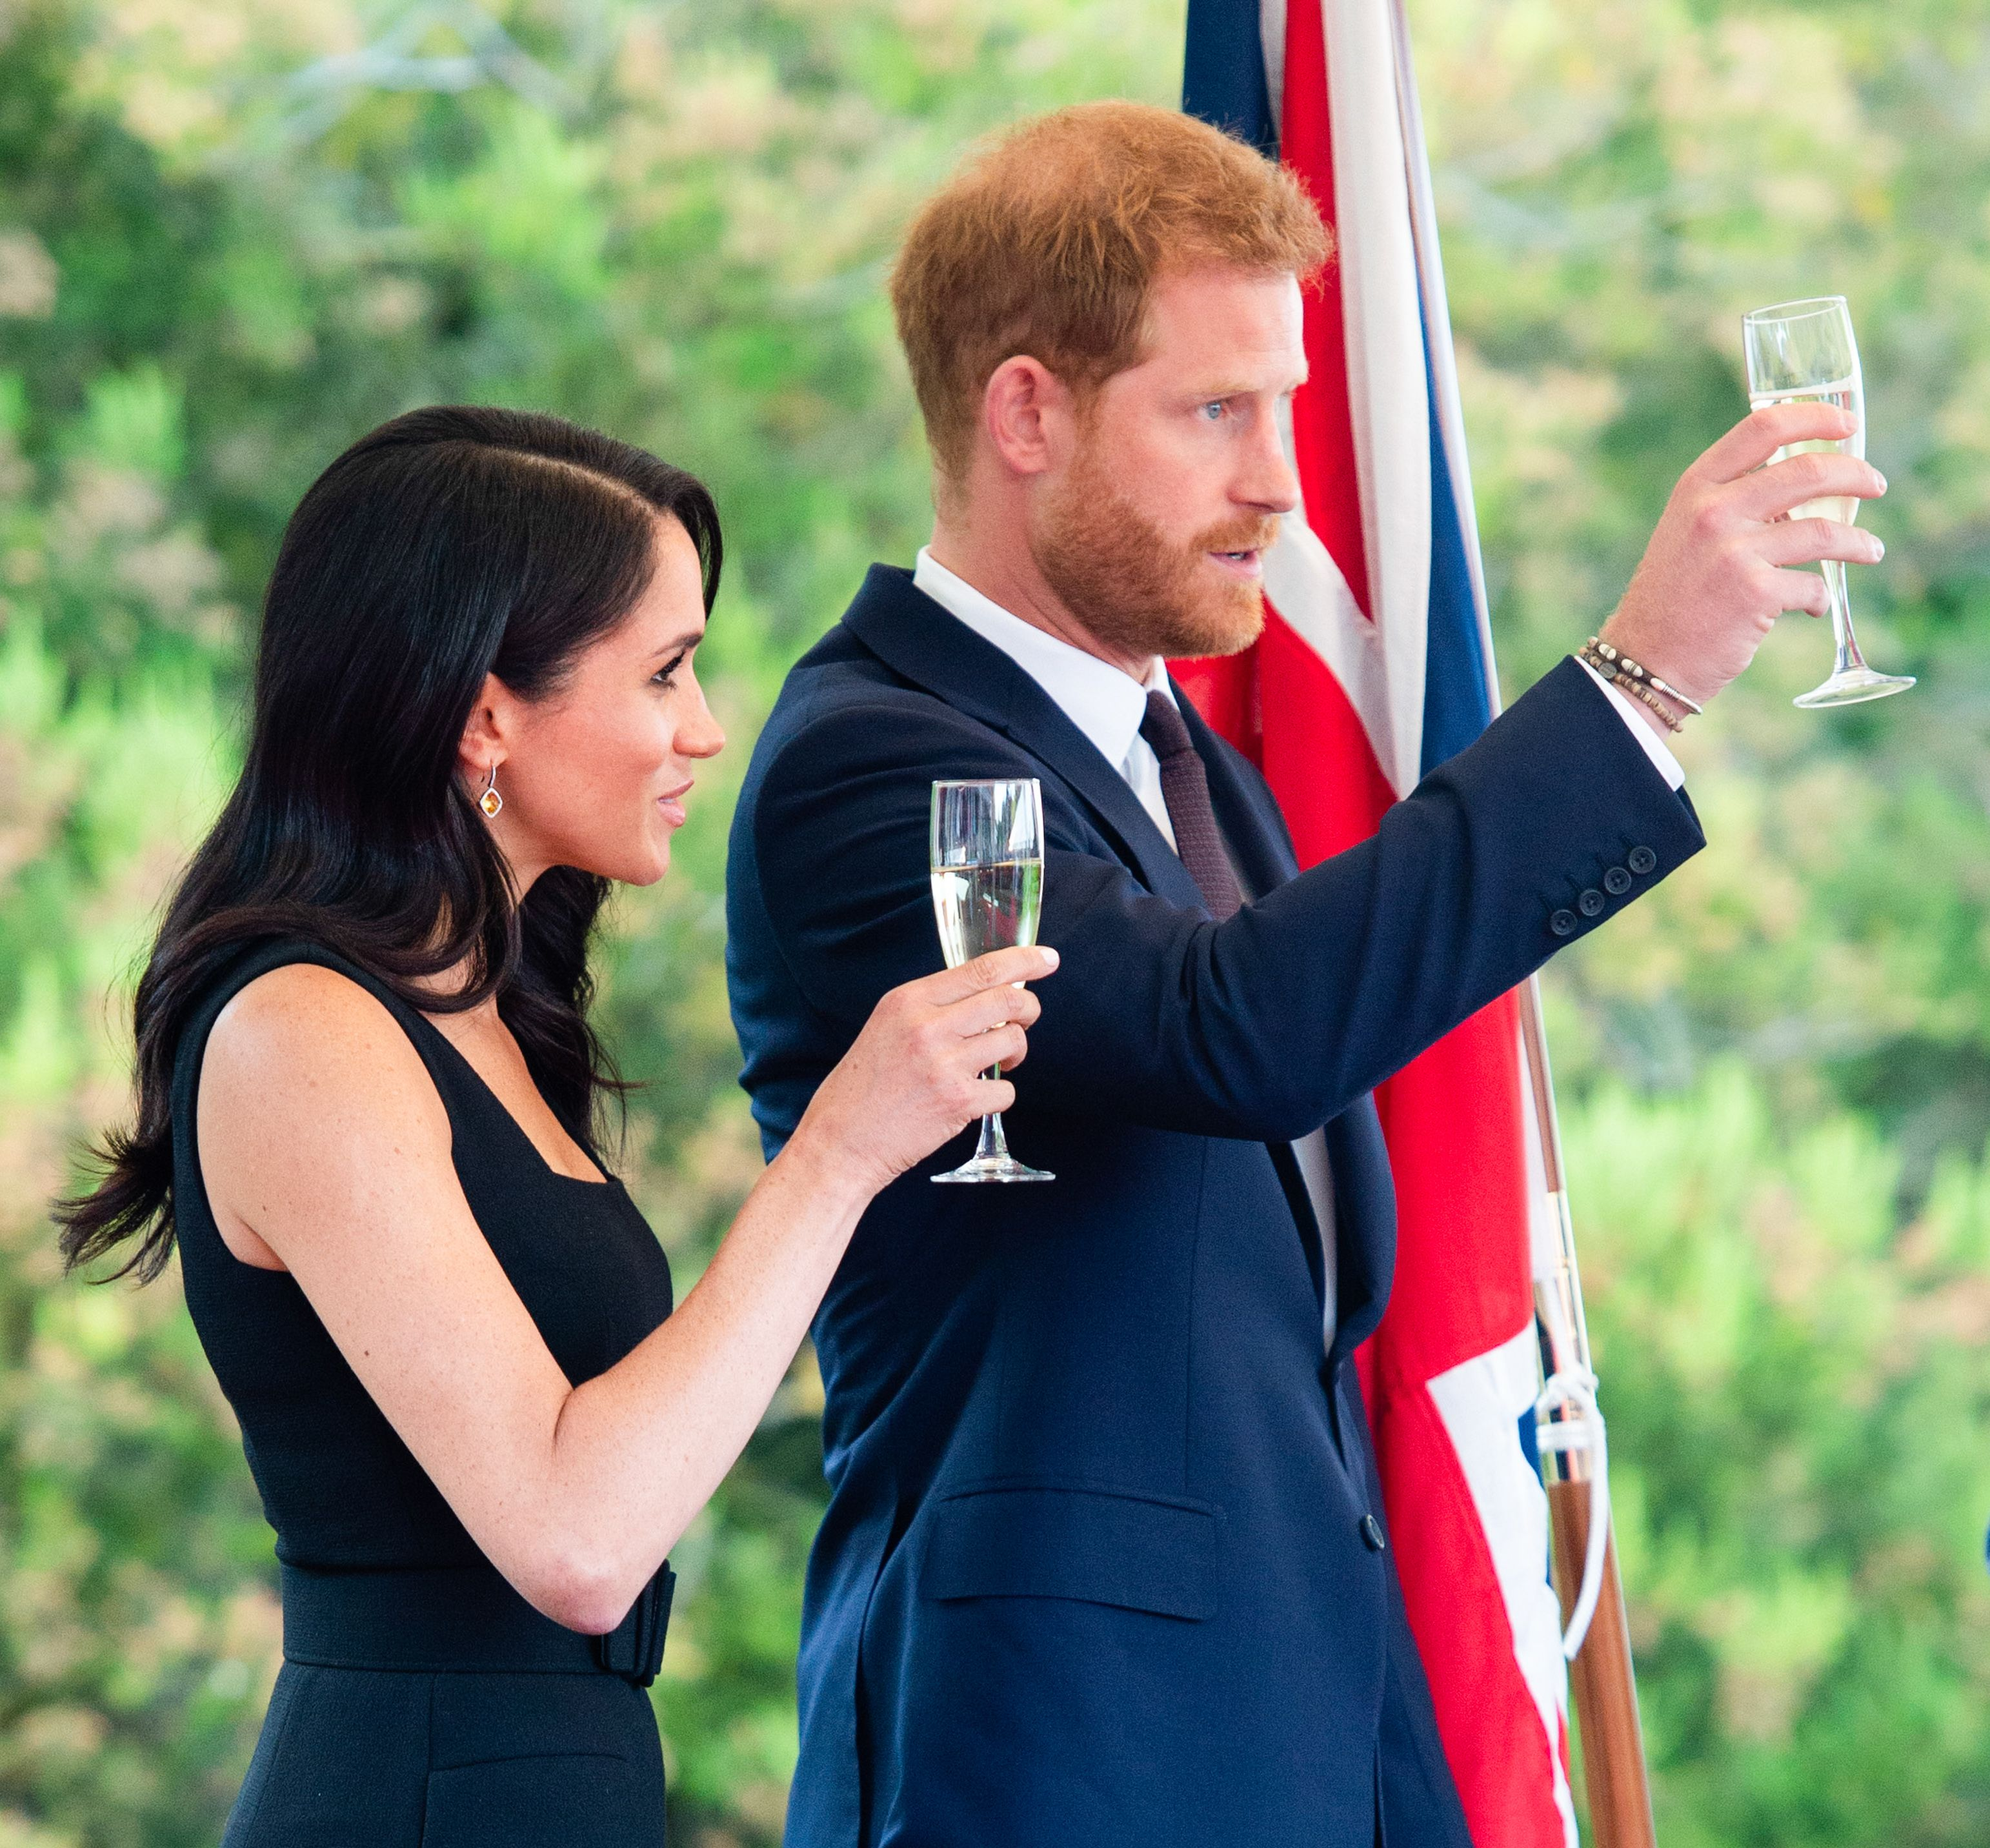 The picture that proves Meghan Markle and Prince Harry aren't having children quite yet